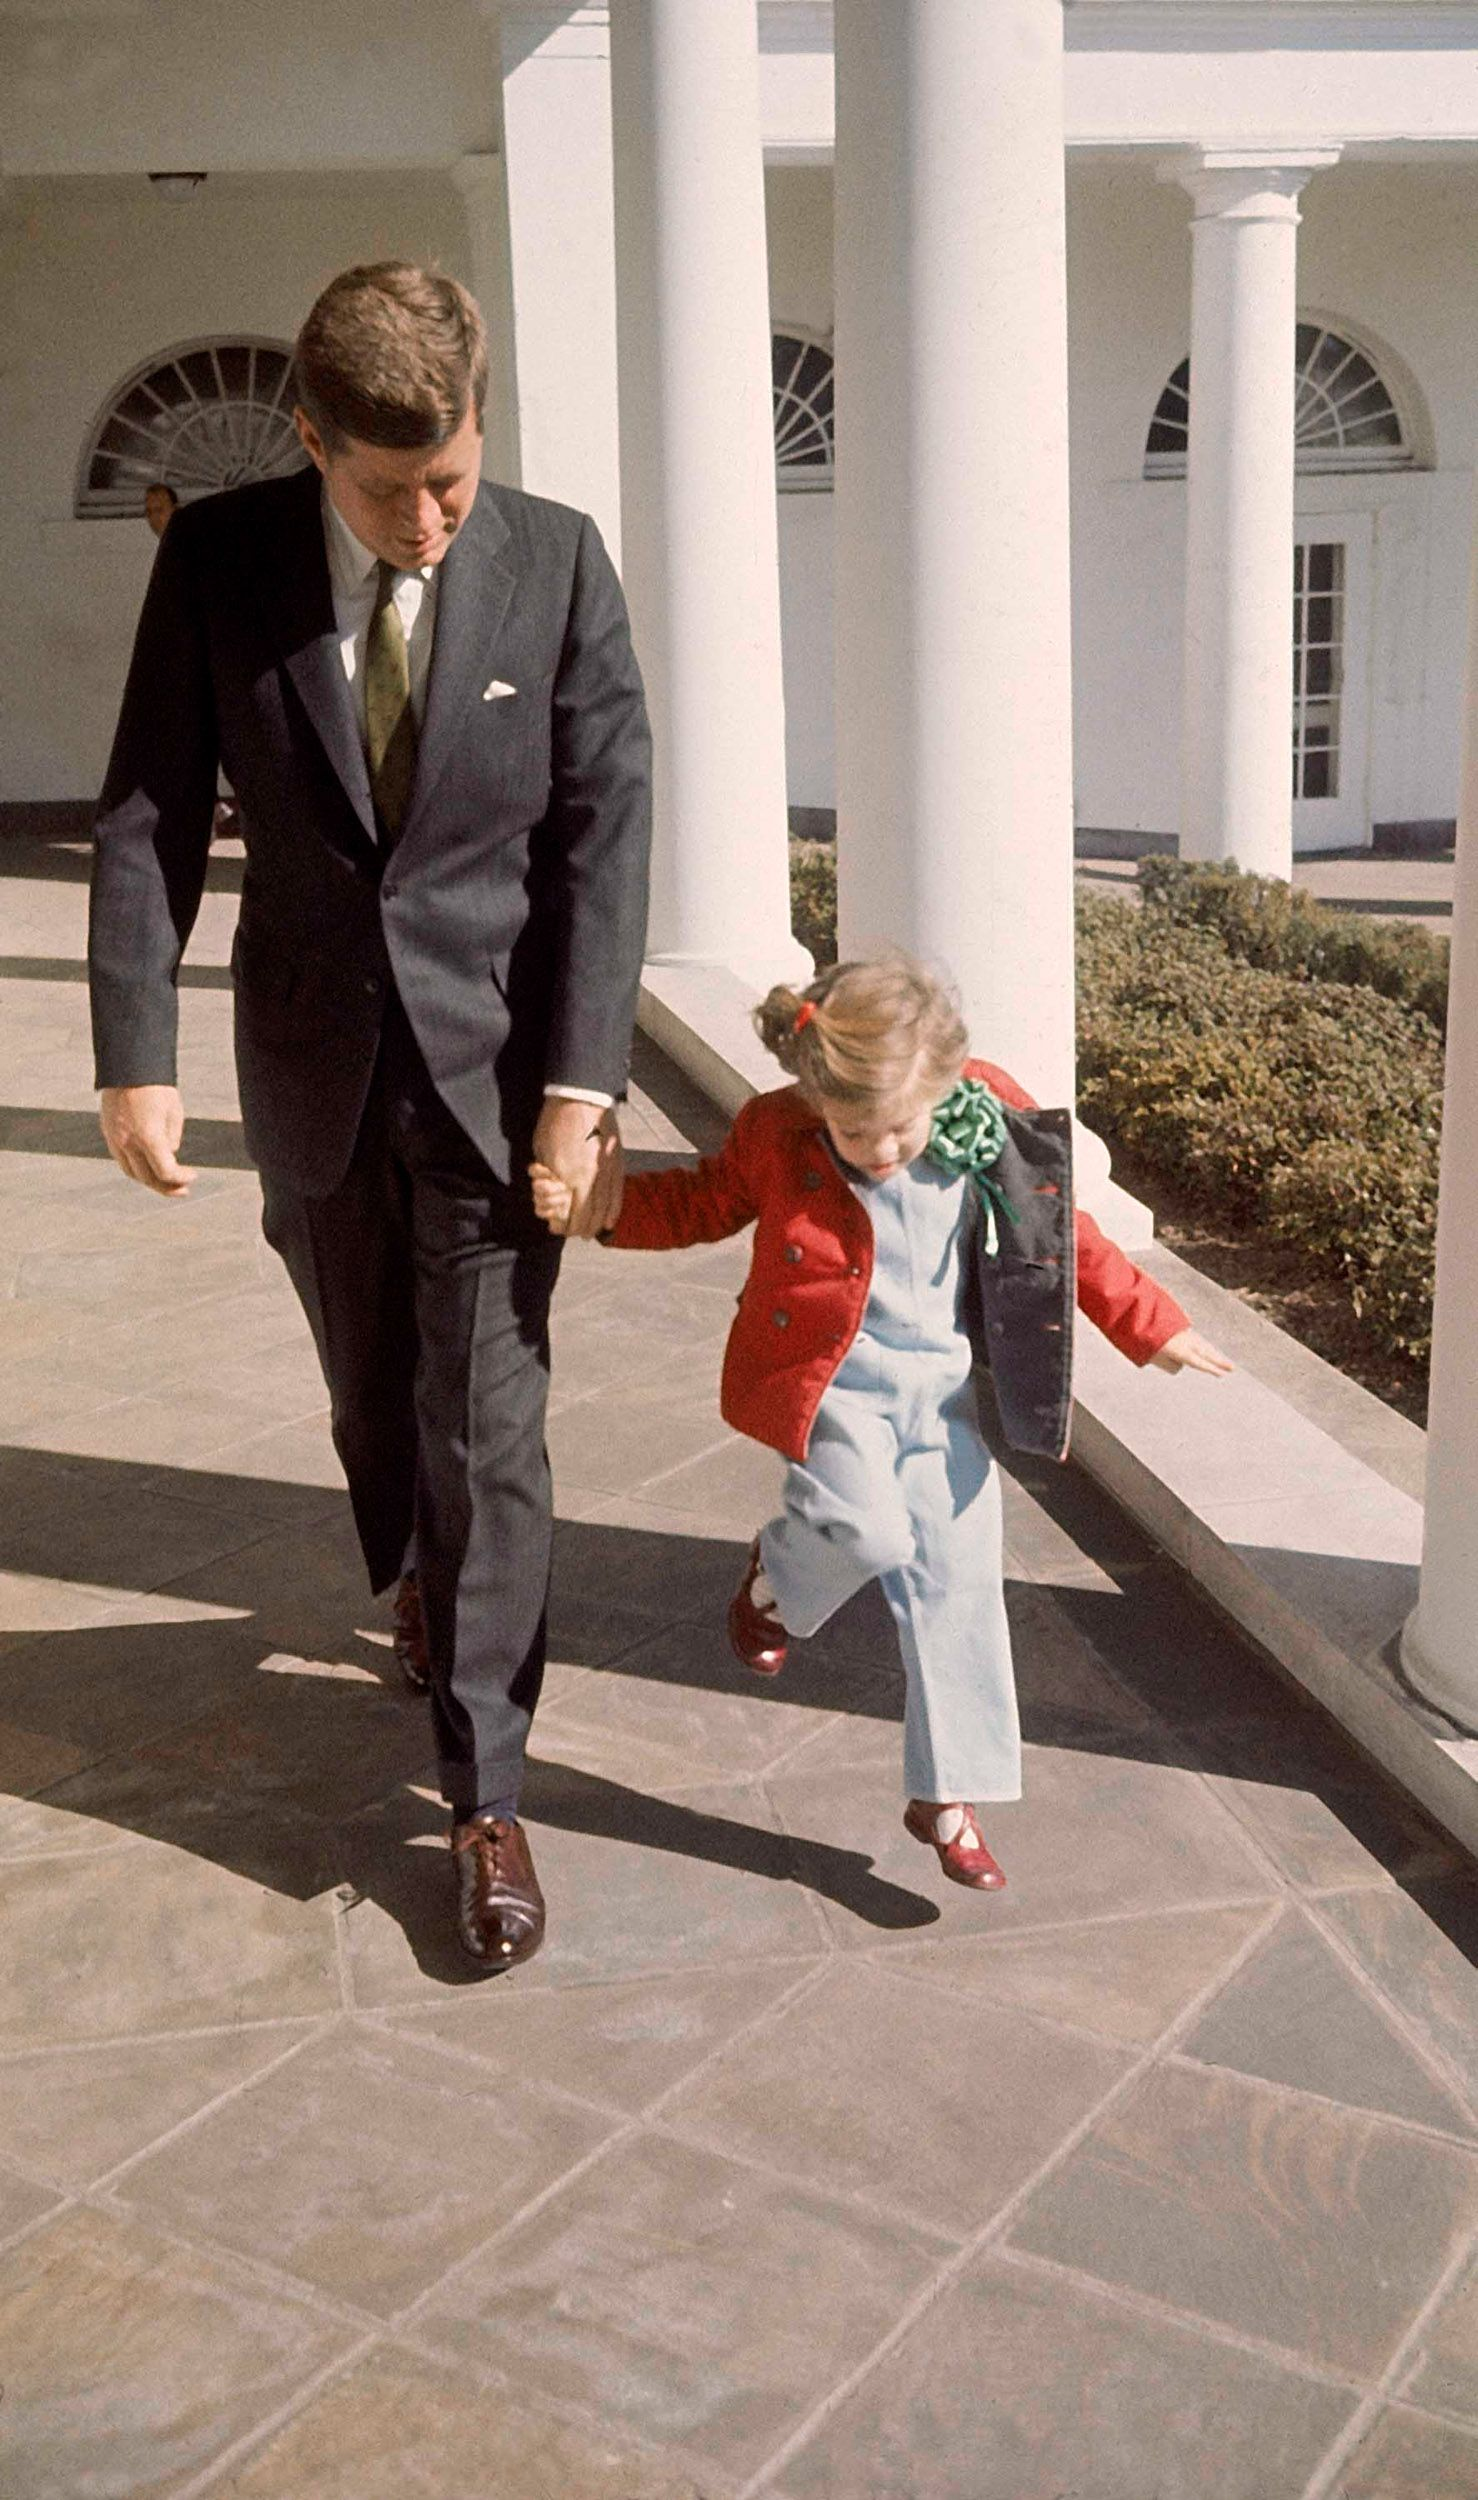 President John F. Kennedy walking hand-in-hand with his daughter Caroline on St. Patrick's Day at the White House in 1961.